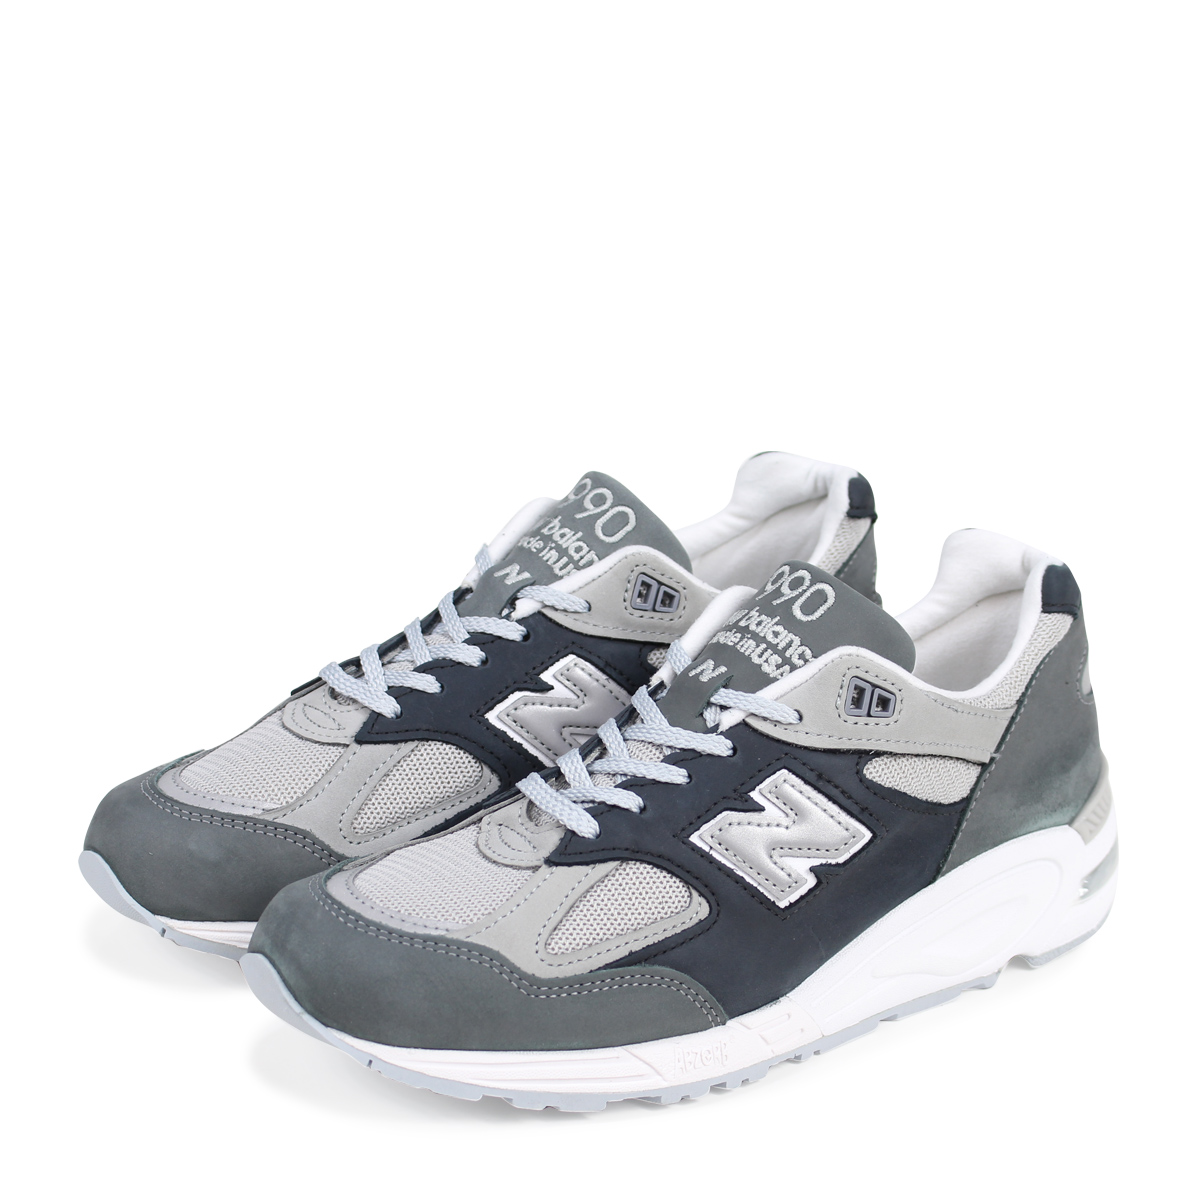 new balance 990 New Balance sneakers men D Wise MADE IN USA gray M990XG2  [193]